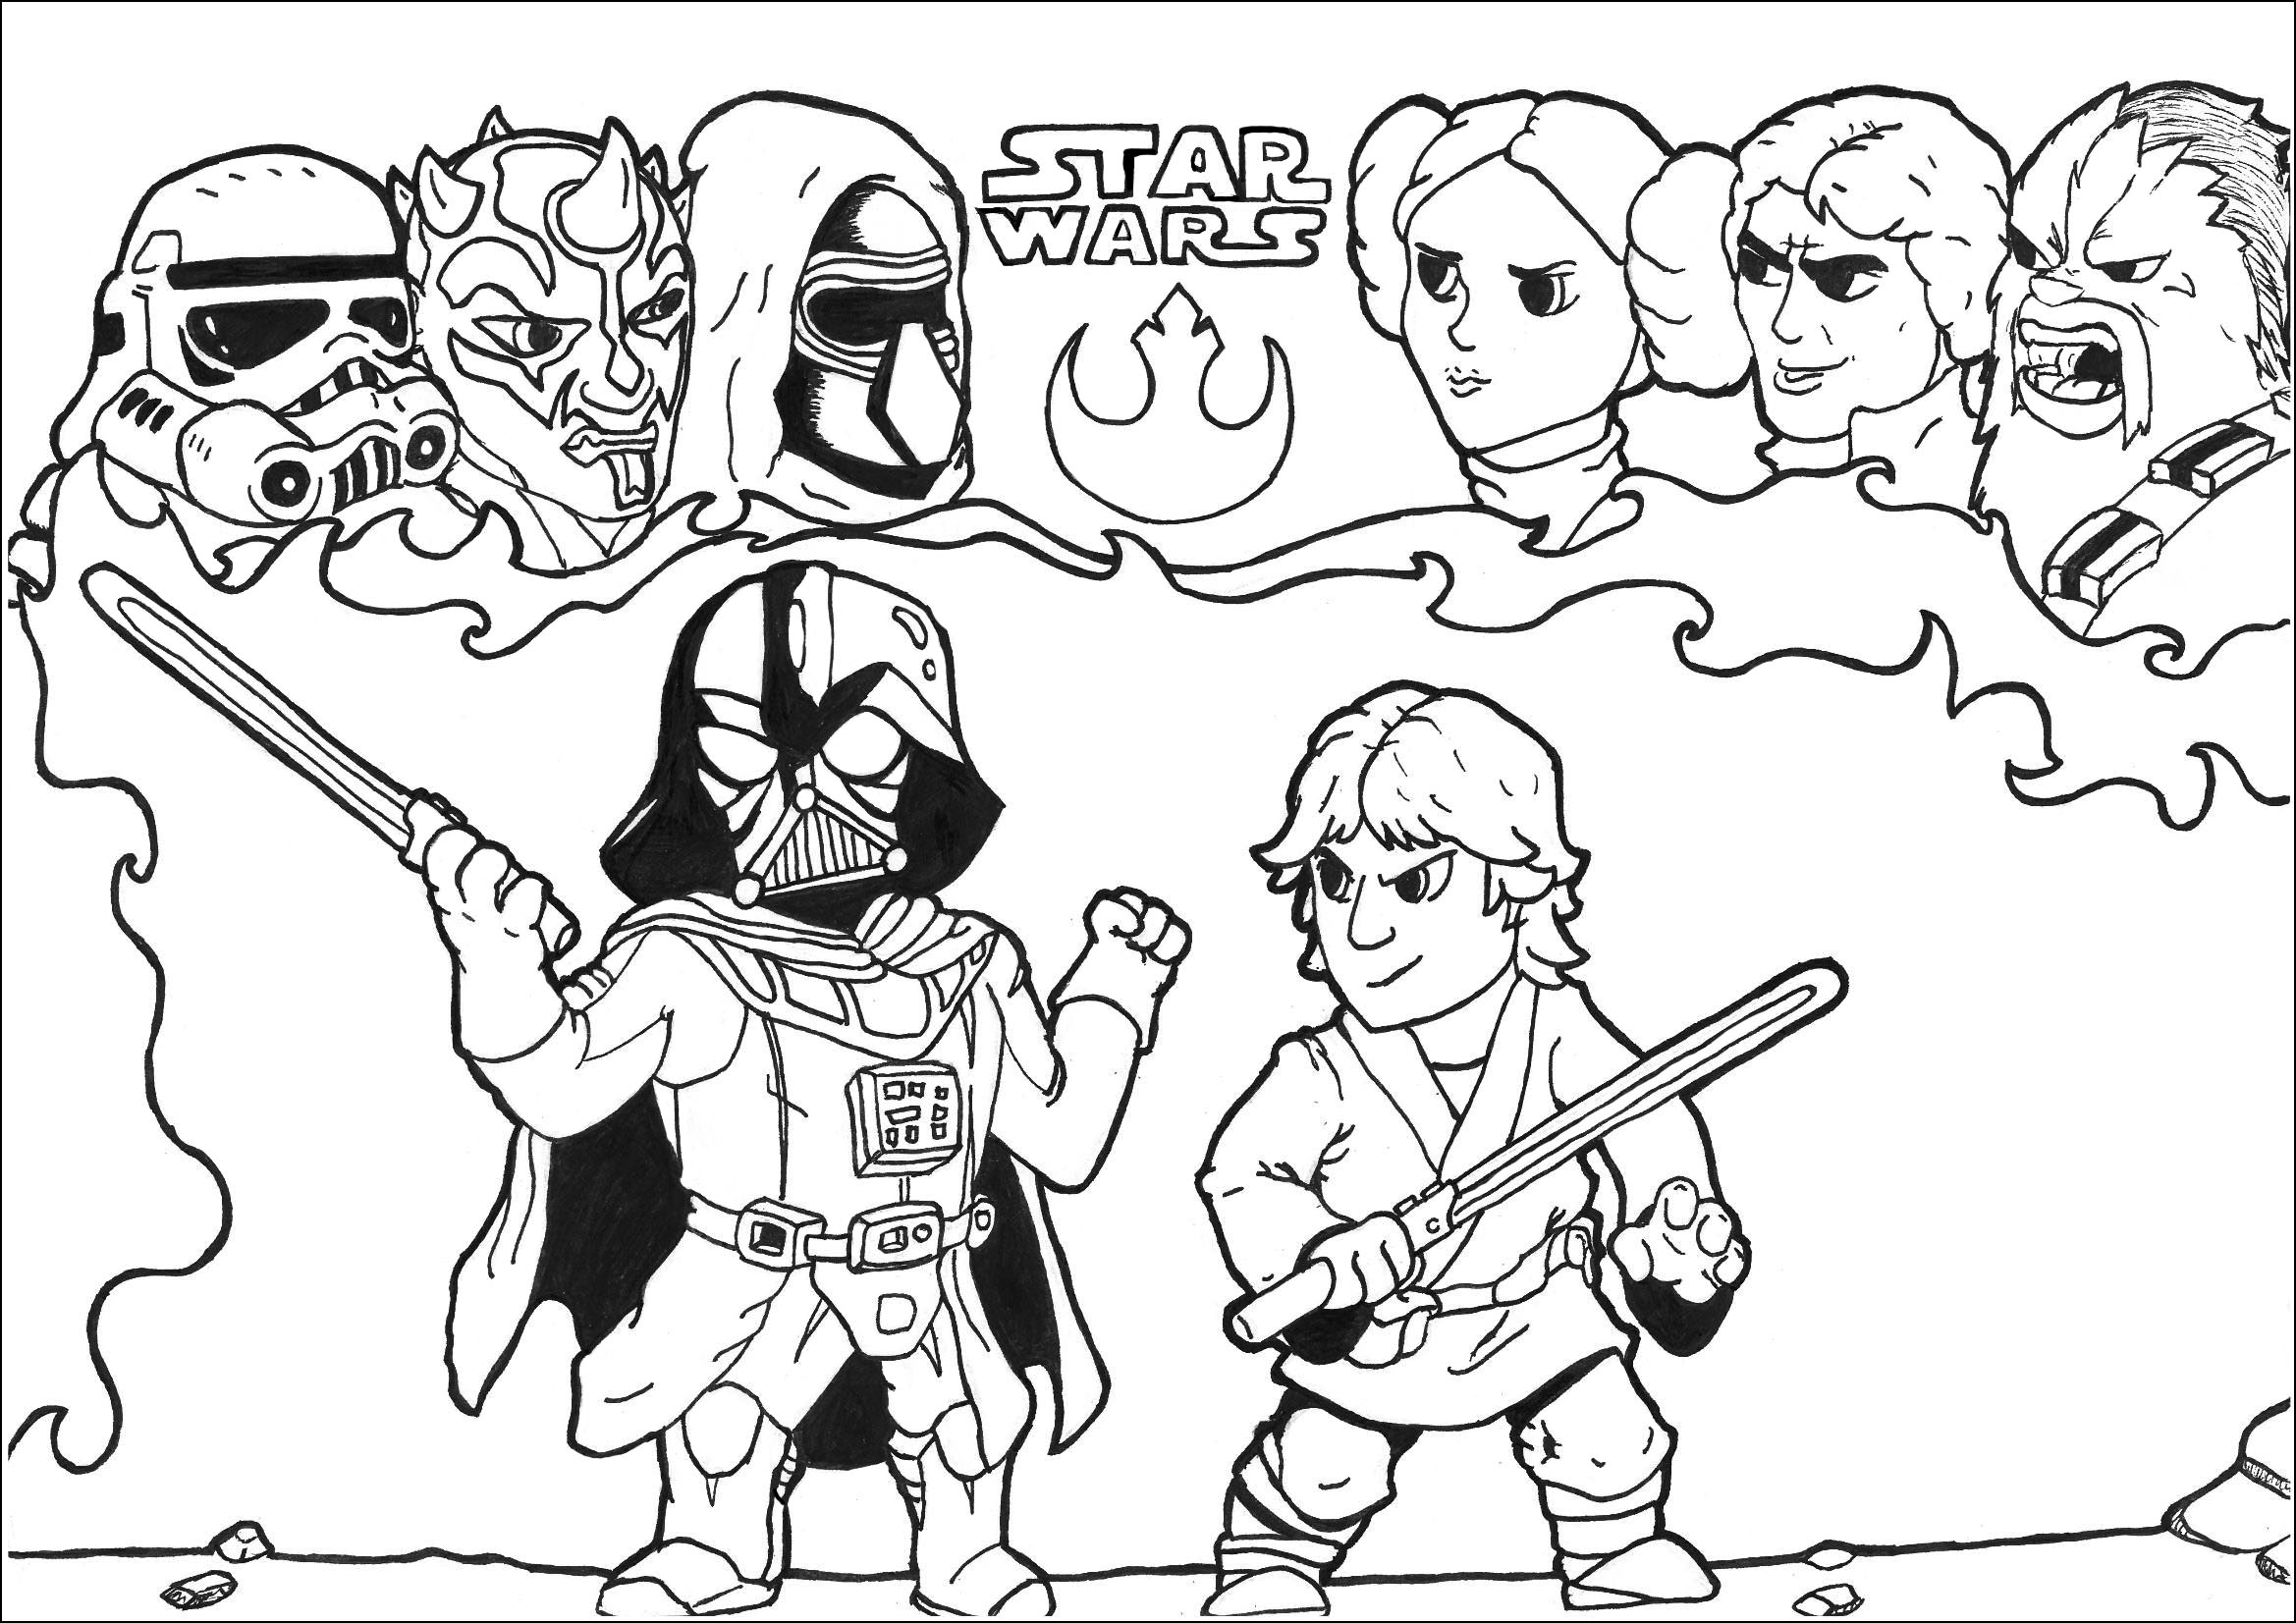 star wars coloring pages to print free star wars printable coloring pages bb 8 c2 b5 print pages to coloring wars star